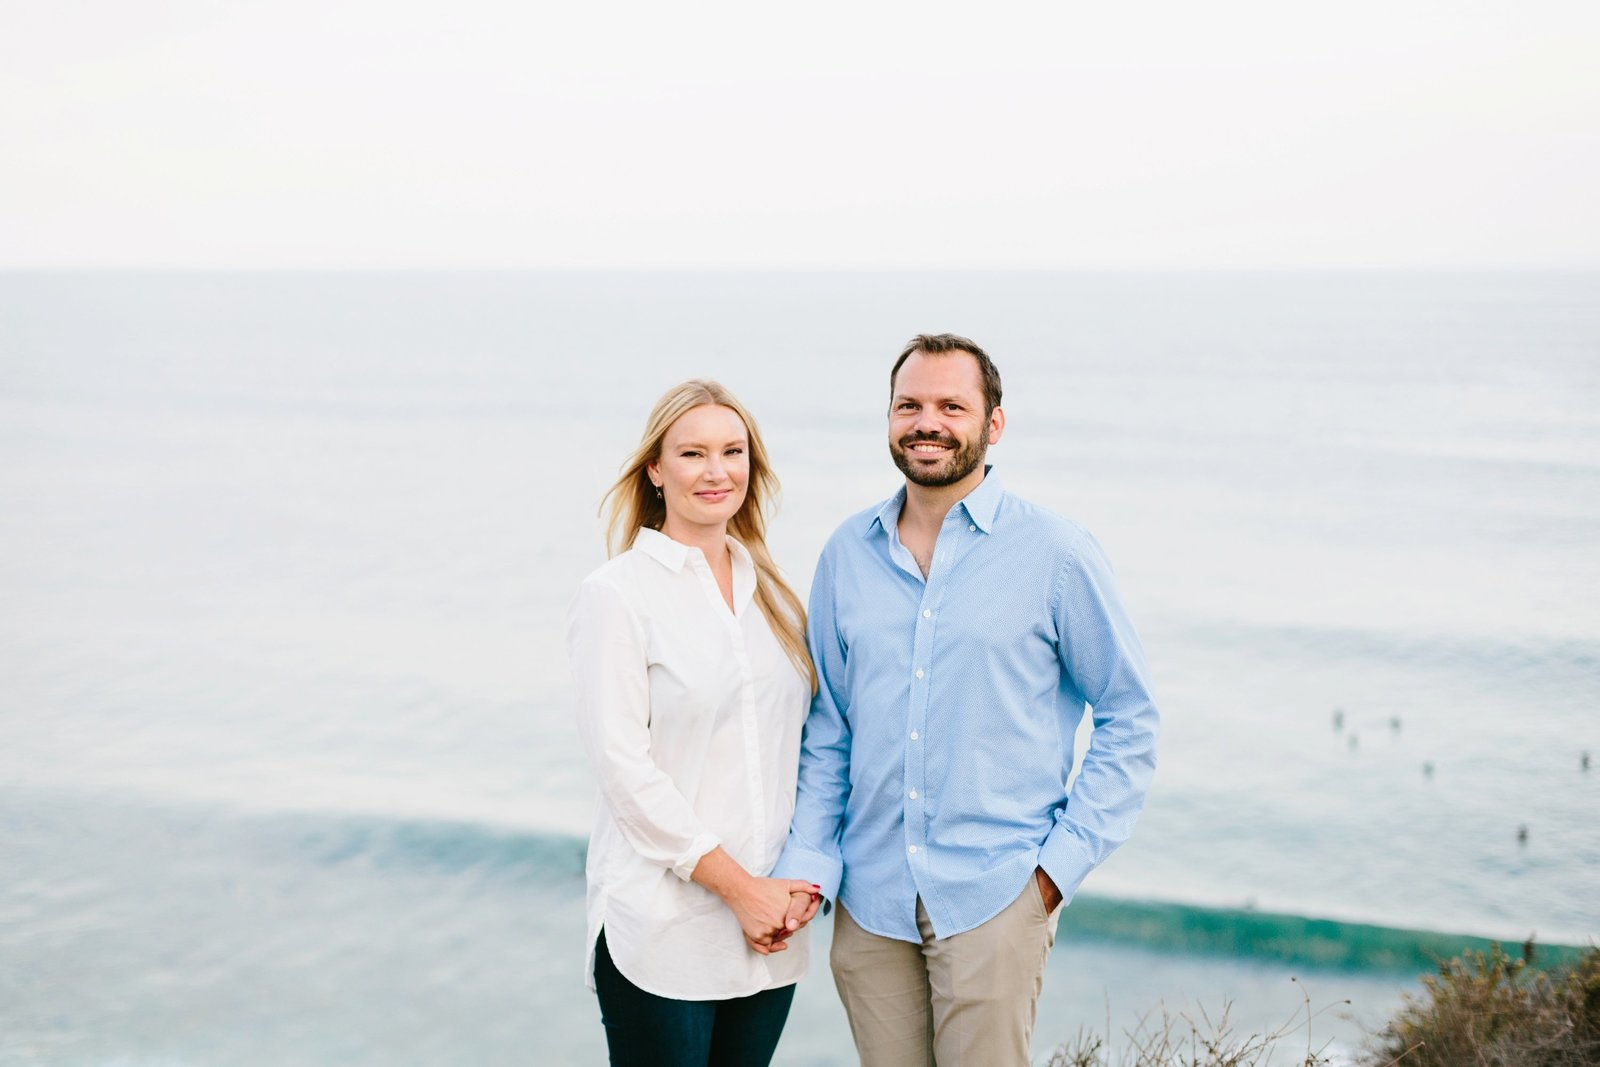 Engagement Photos-Jodee Debes Photography-216